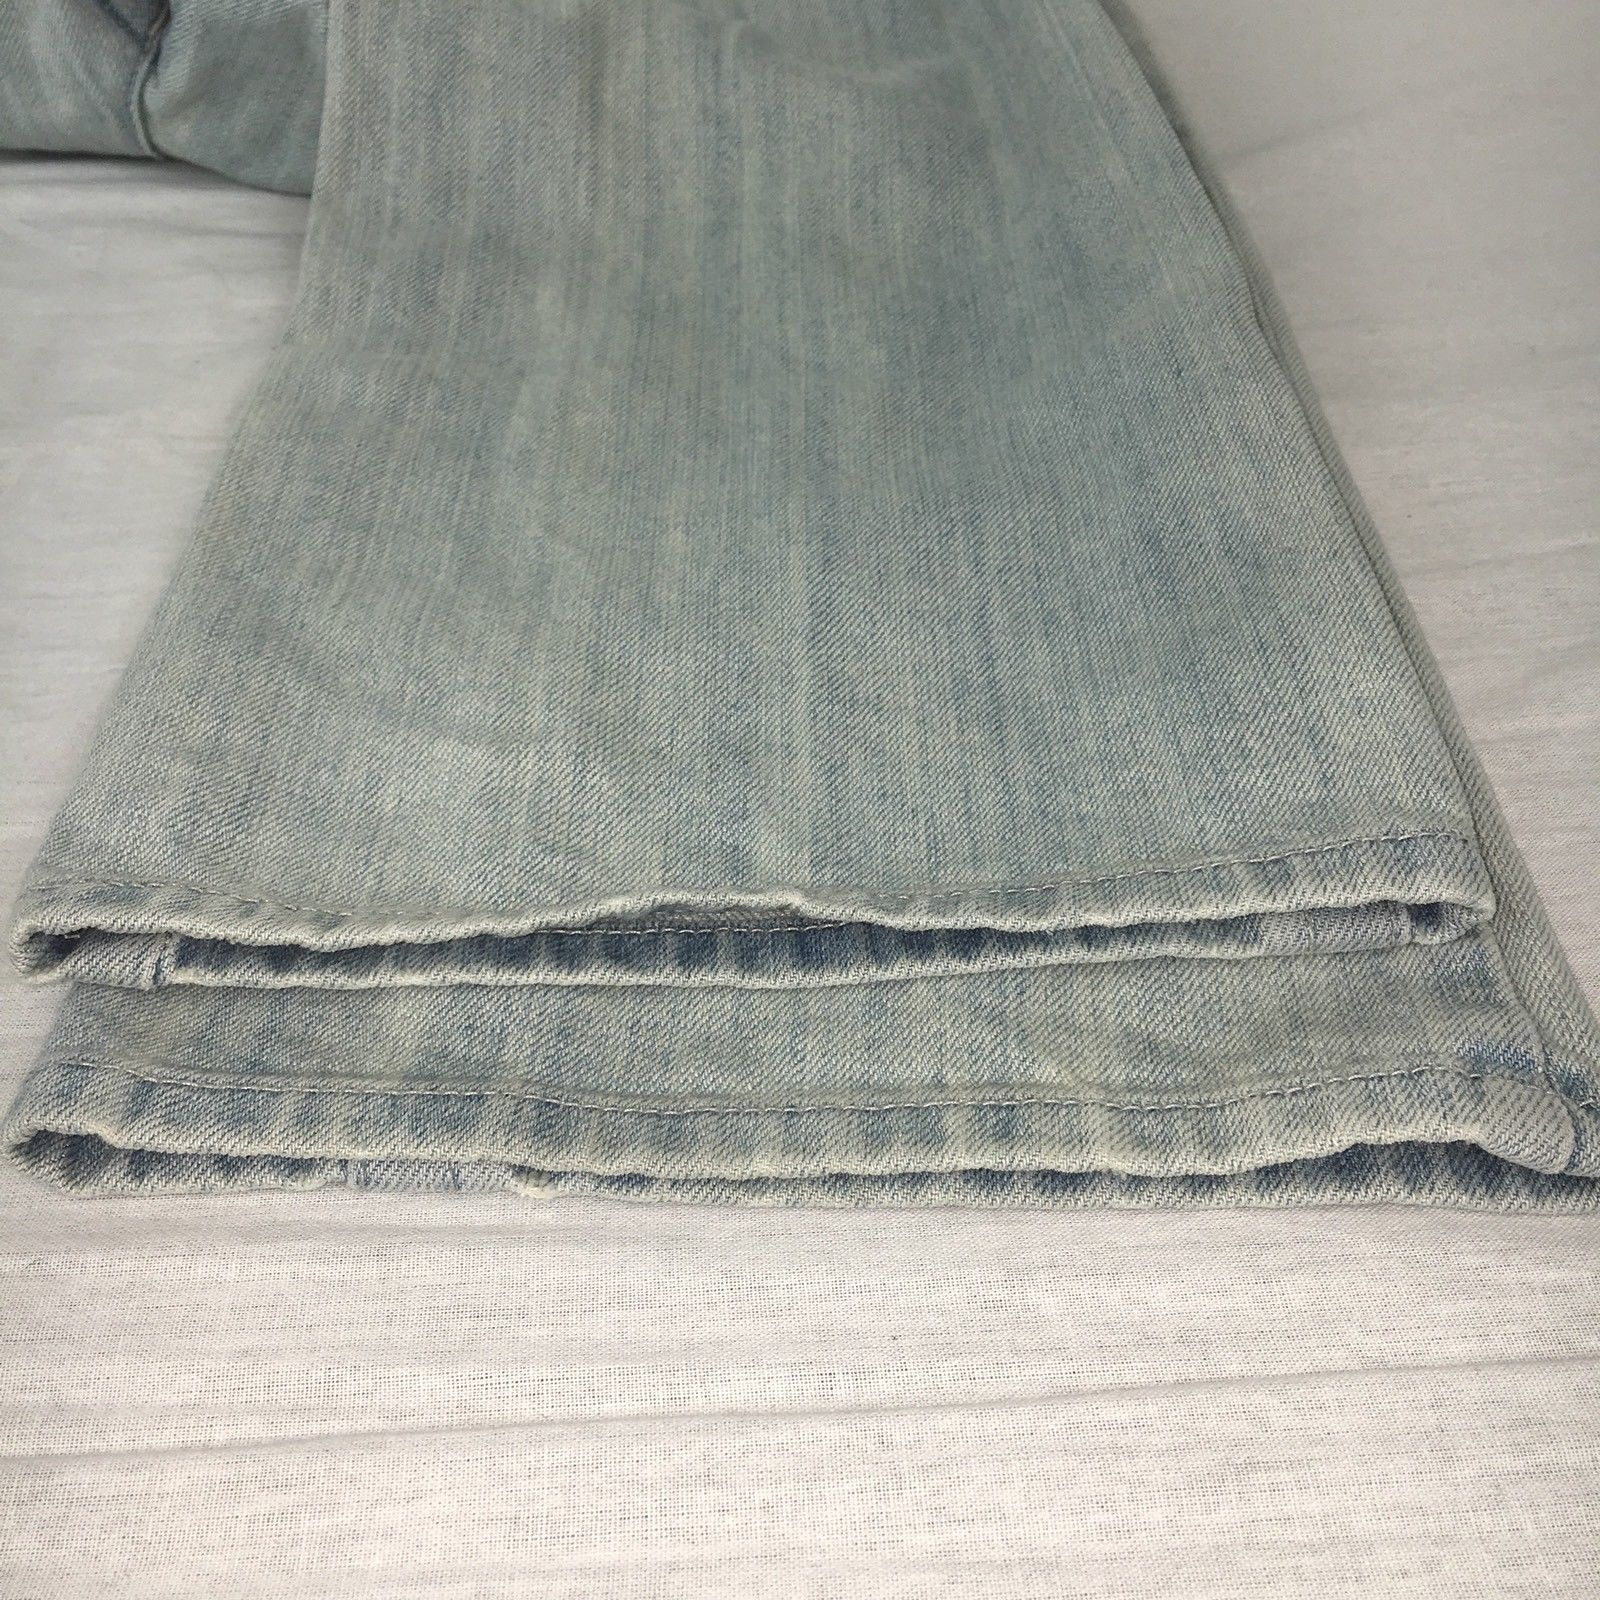 Marithe Francois Girbaud Womens Jeans Straight Leg Light Wash Distressed Size 30